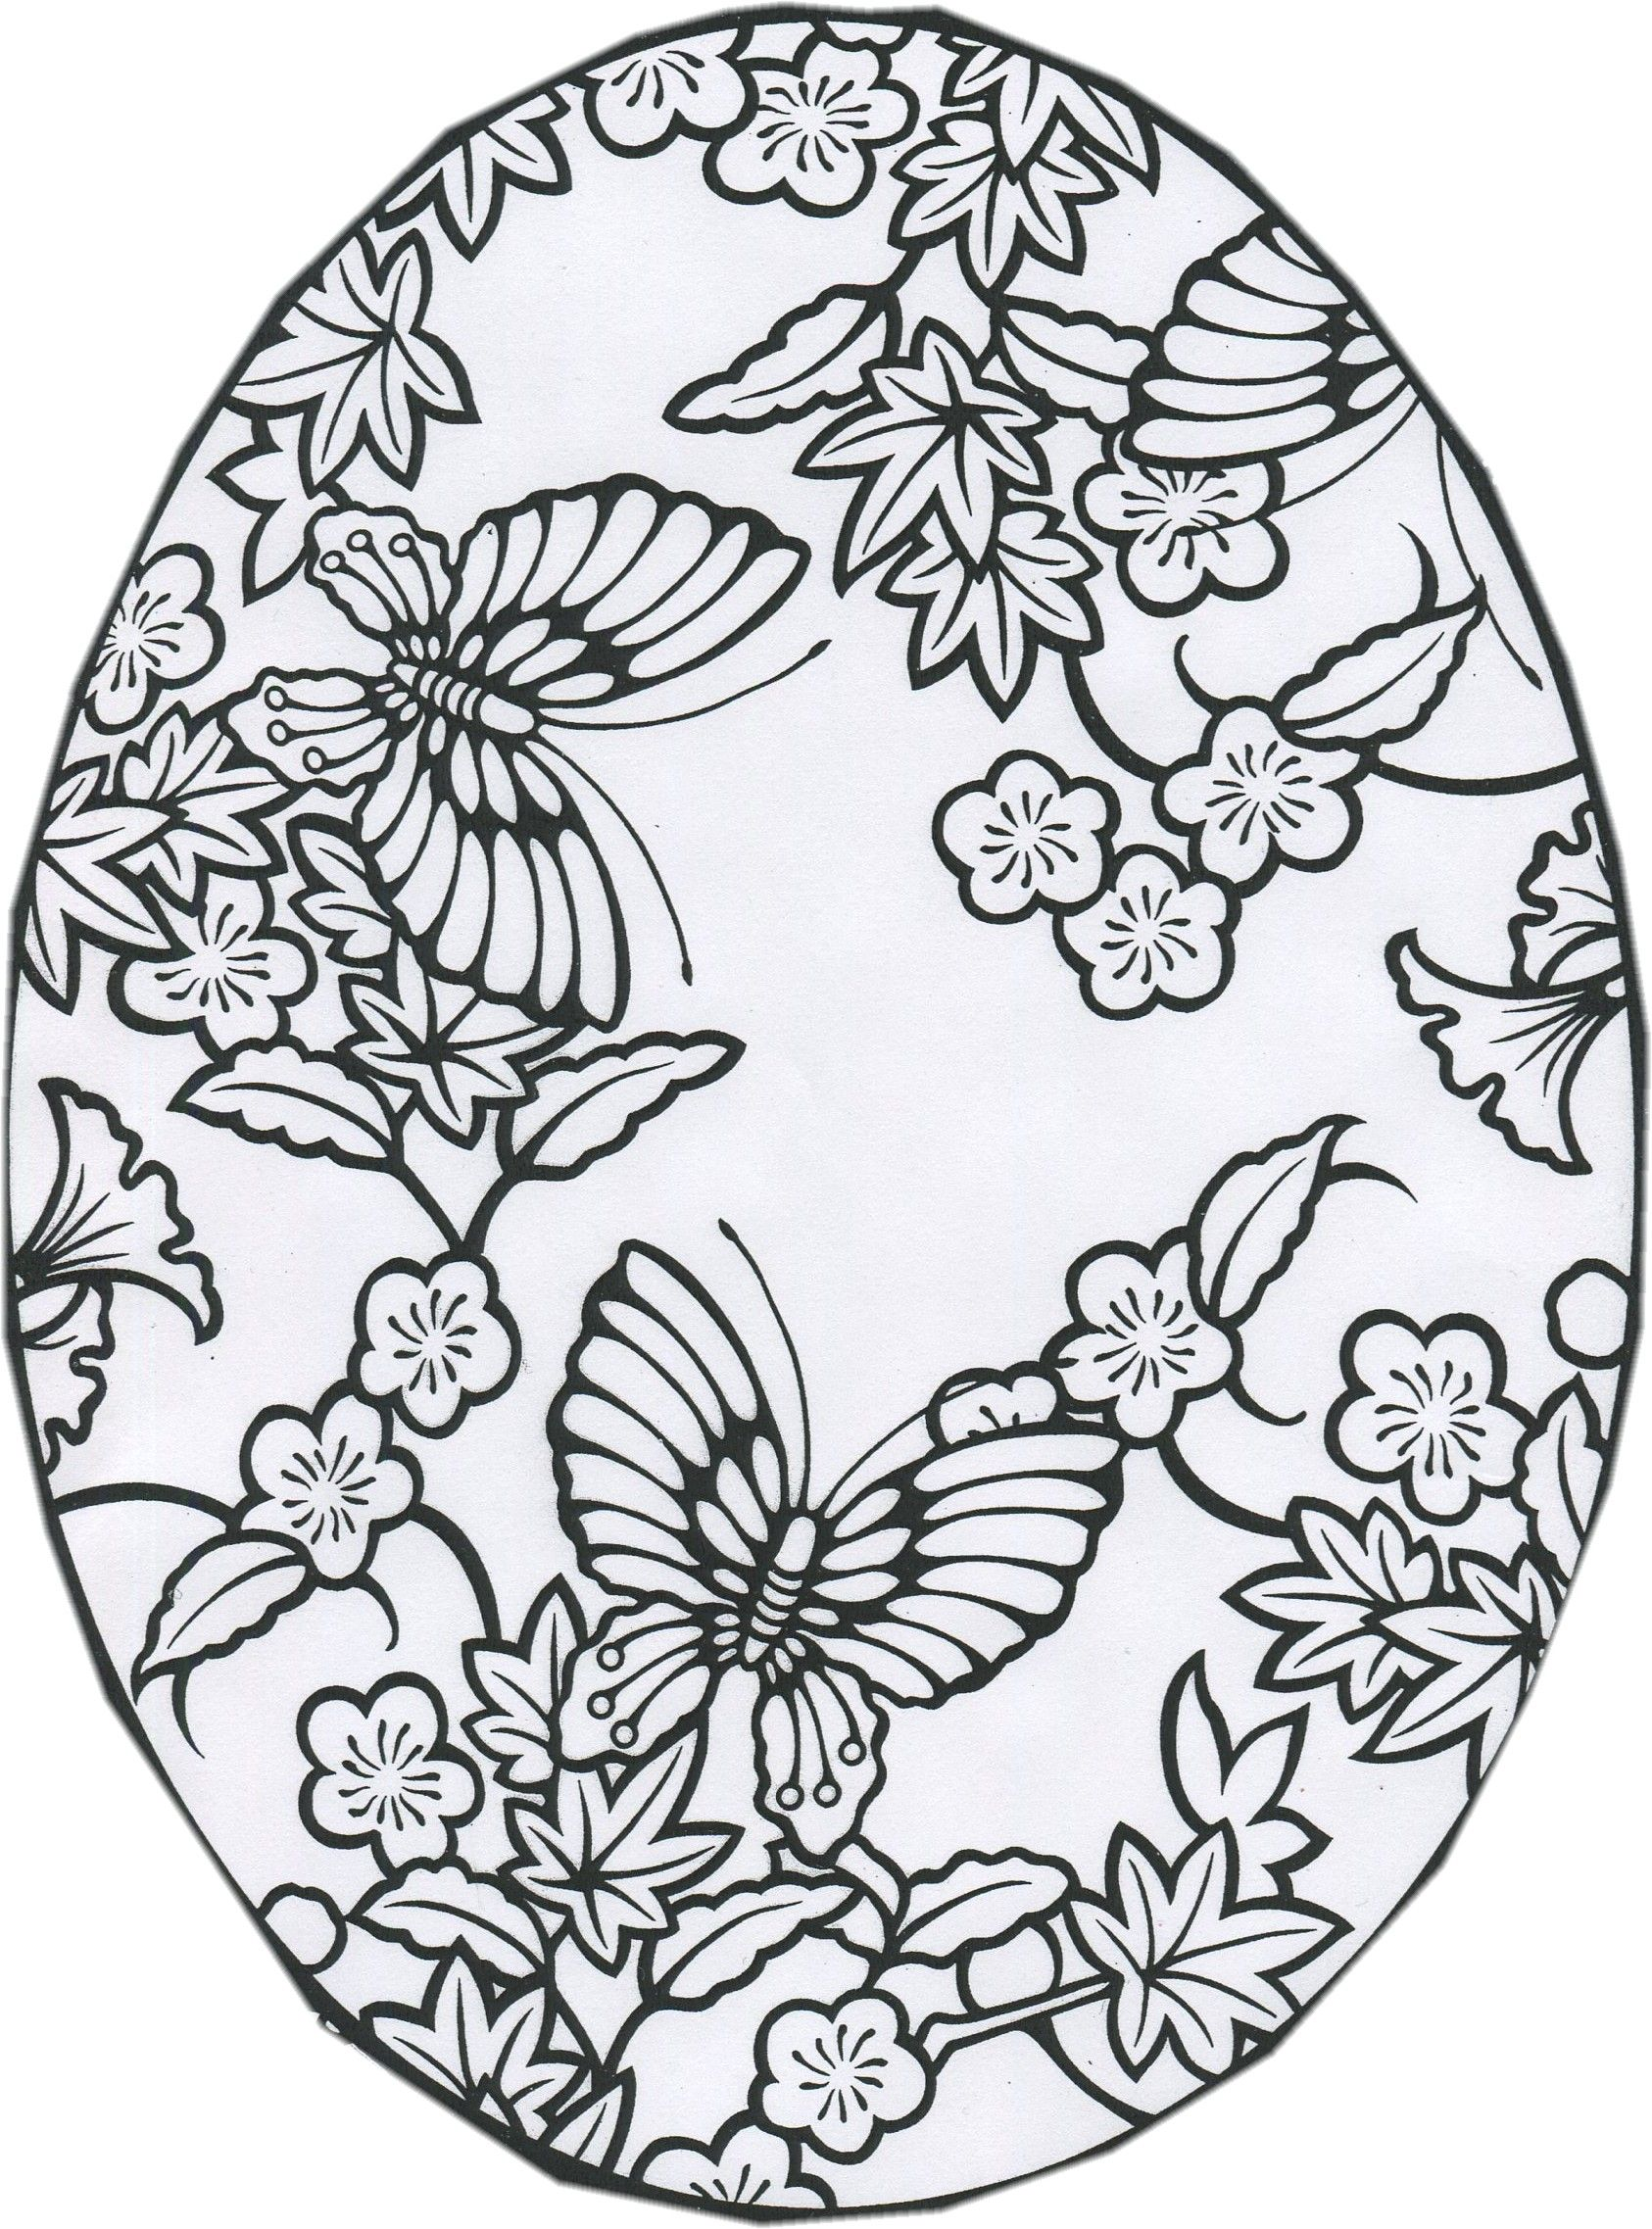 Abd Jpg 1686 2275 Pattern Coloring Pages Detailed Coloring